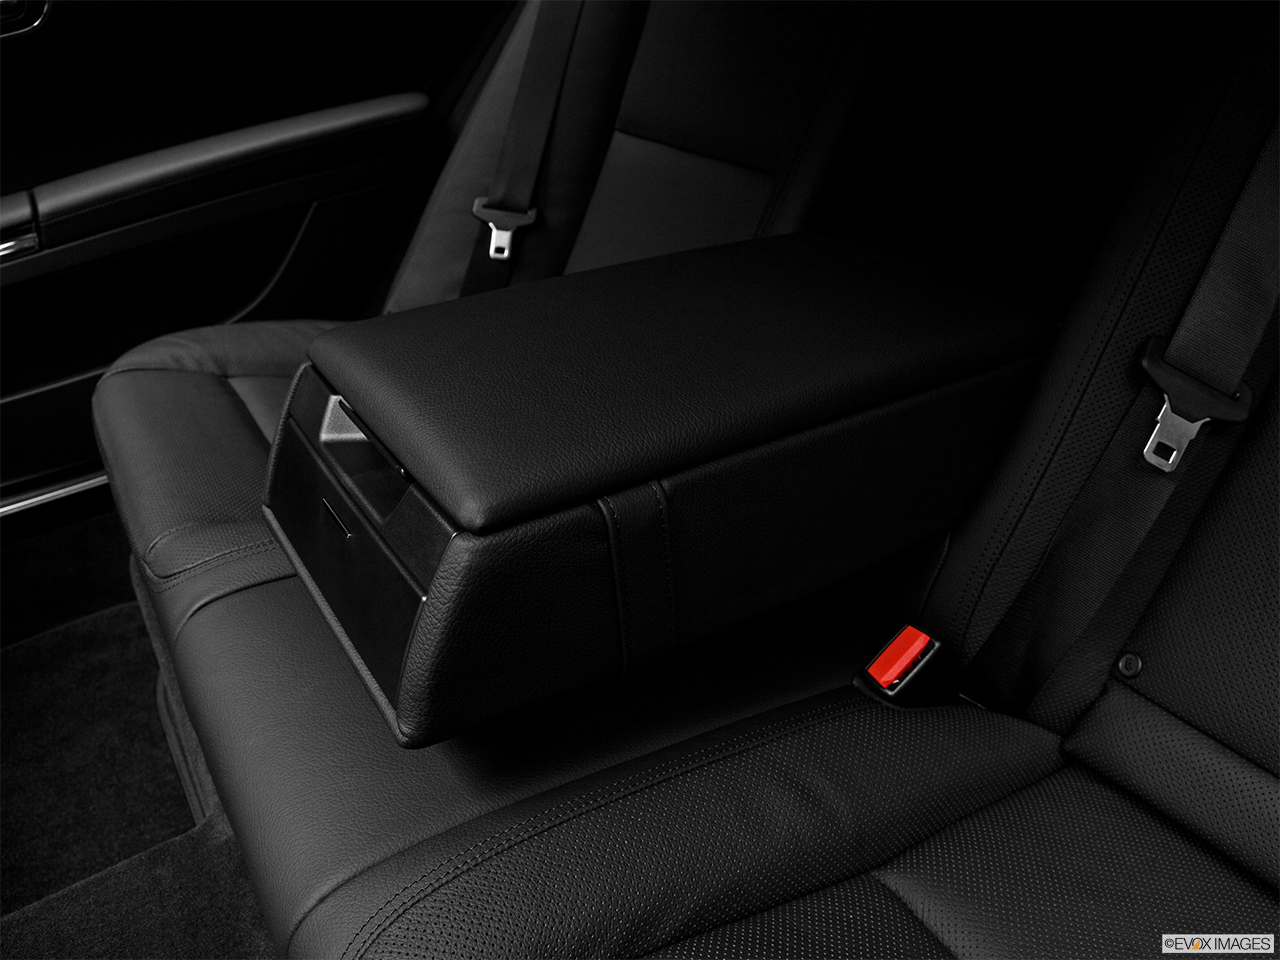 2012 Mercedes-Benz S-Class Hybrid S400 Rear center console with closed lid from driver's side looking down.